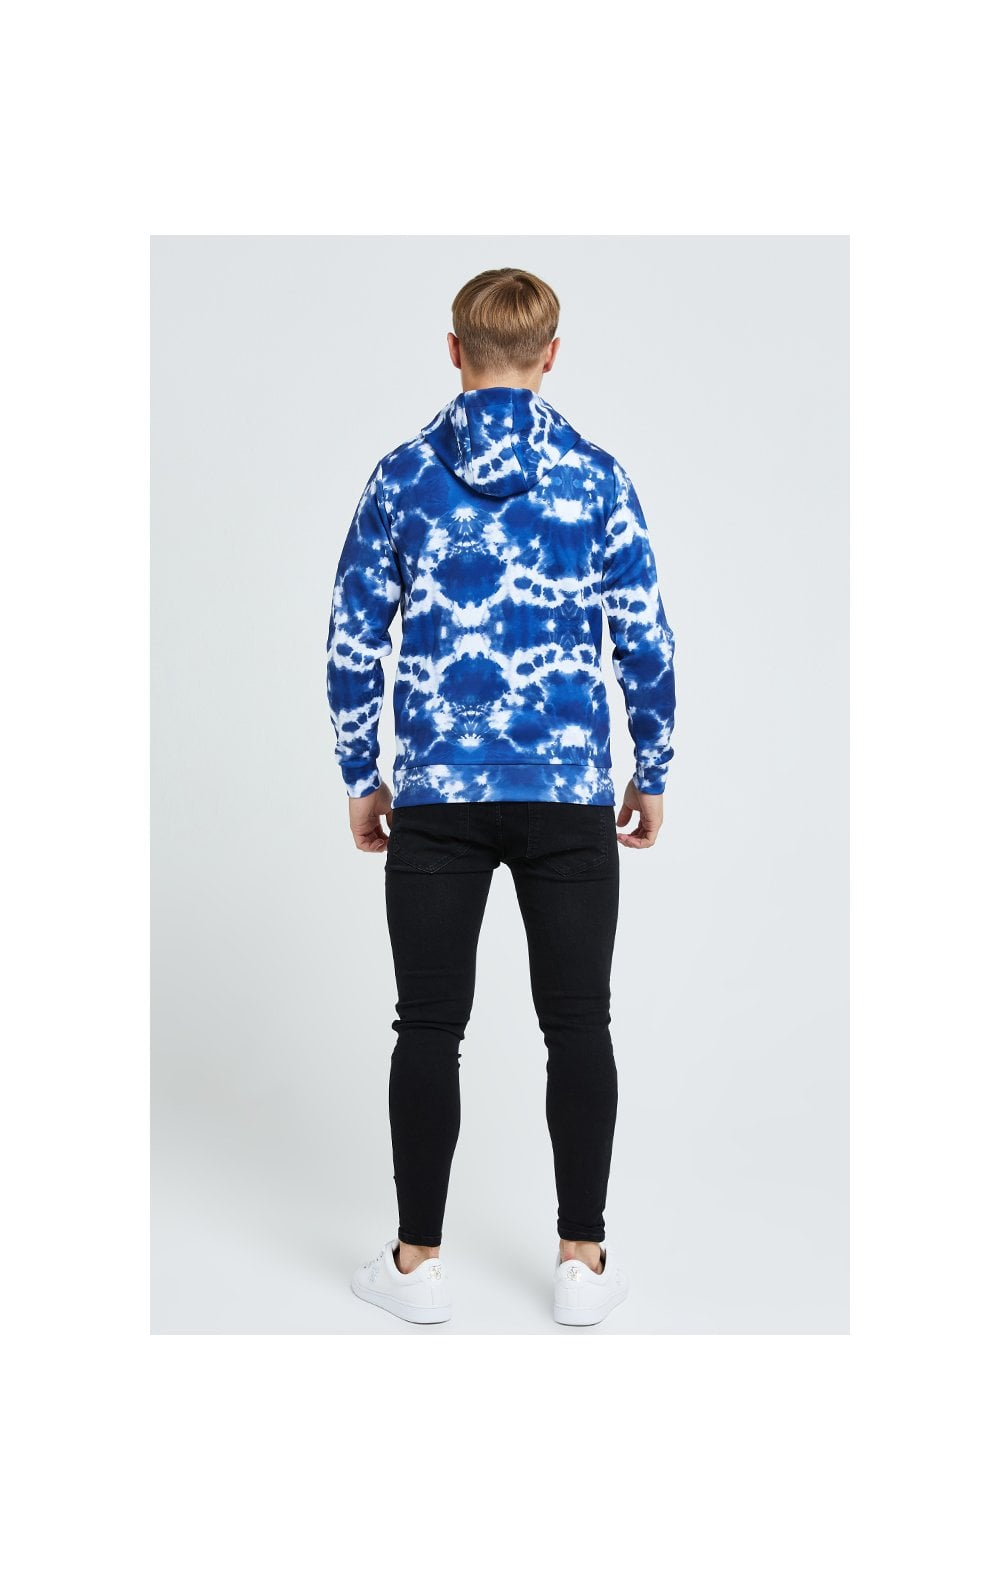 Load image into Gallery viewer, Illusive London Tie Dye Print Hoodie - Blue & White (4)